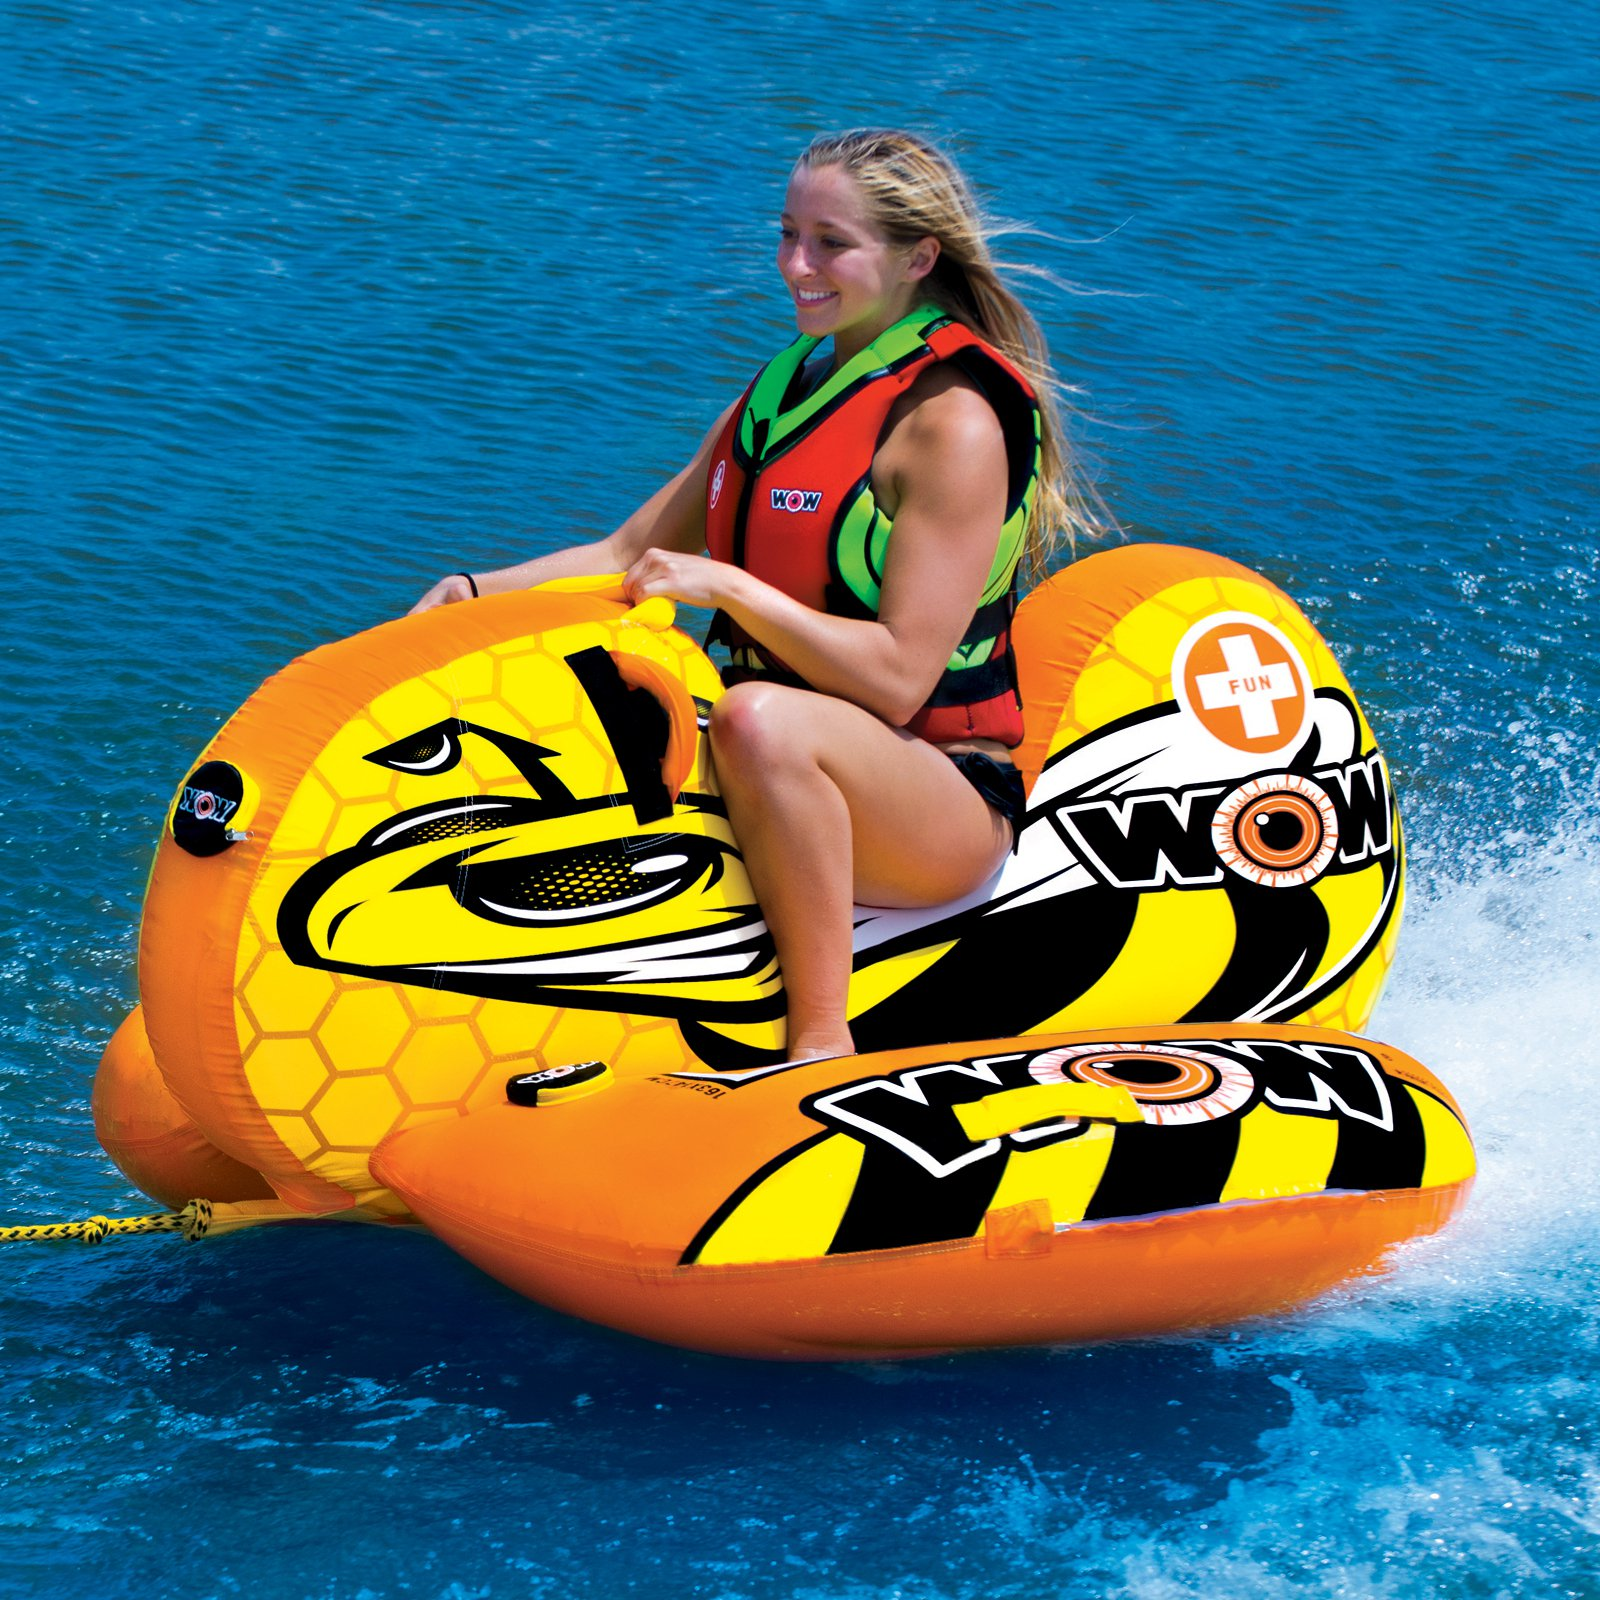 WOW World of Watersports Buzz Boat Ski Tube